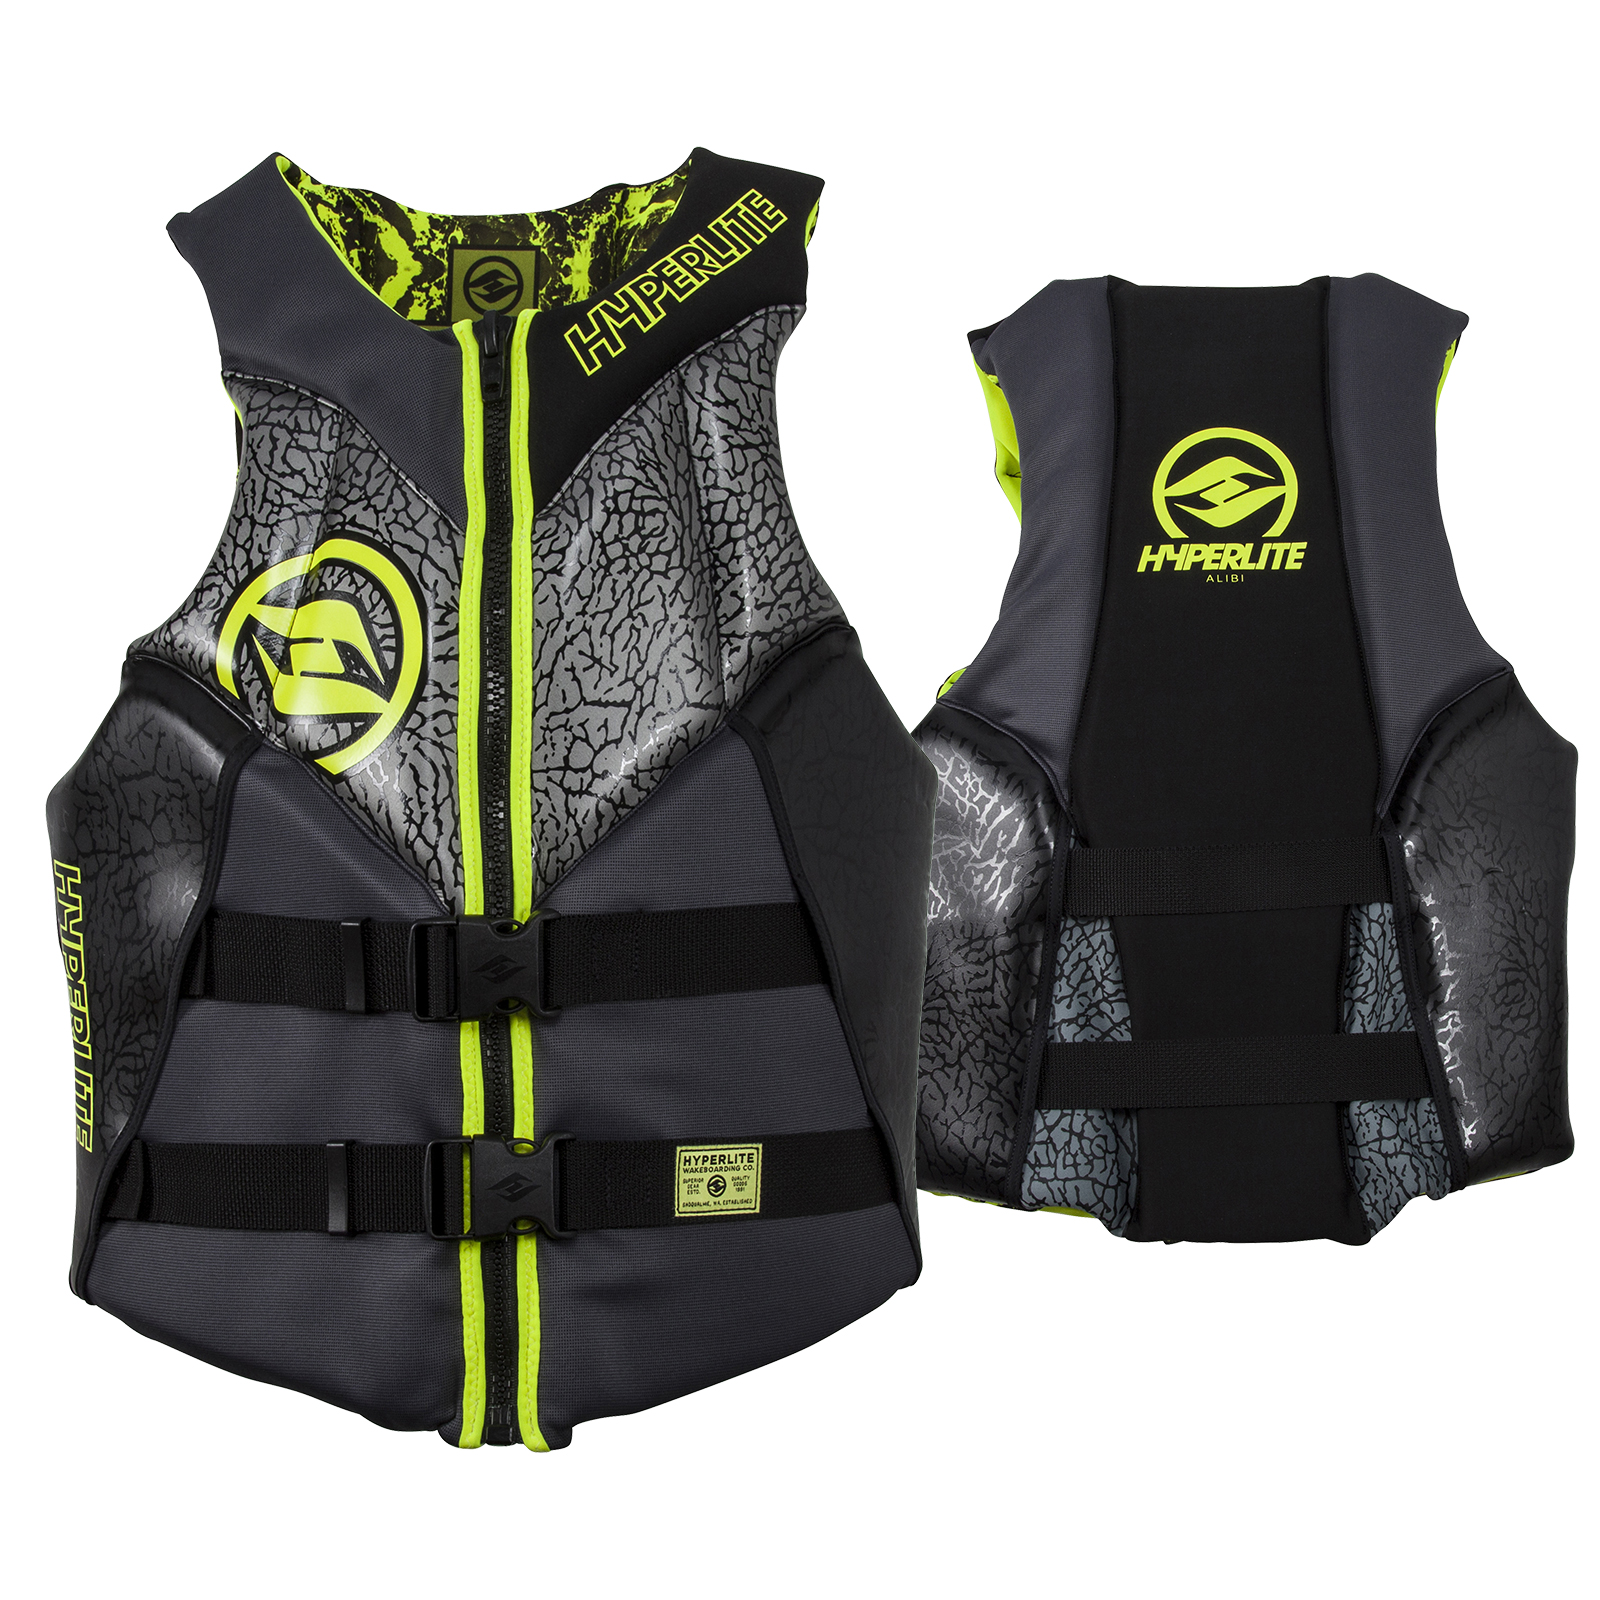 MEN'S ALIBI NEO VEST HYPERLITE 2018